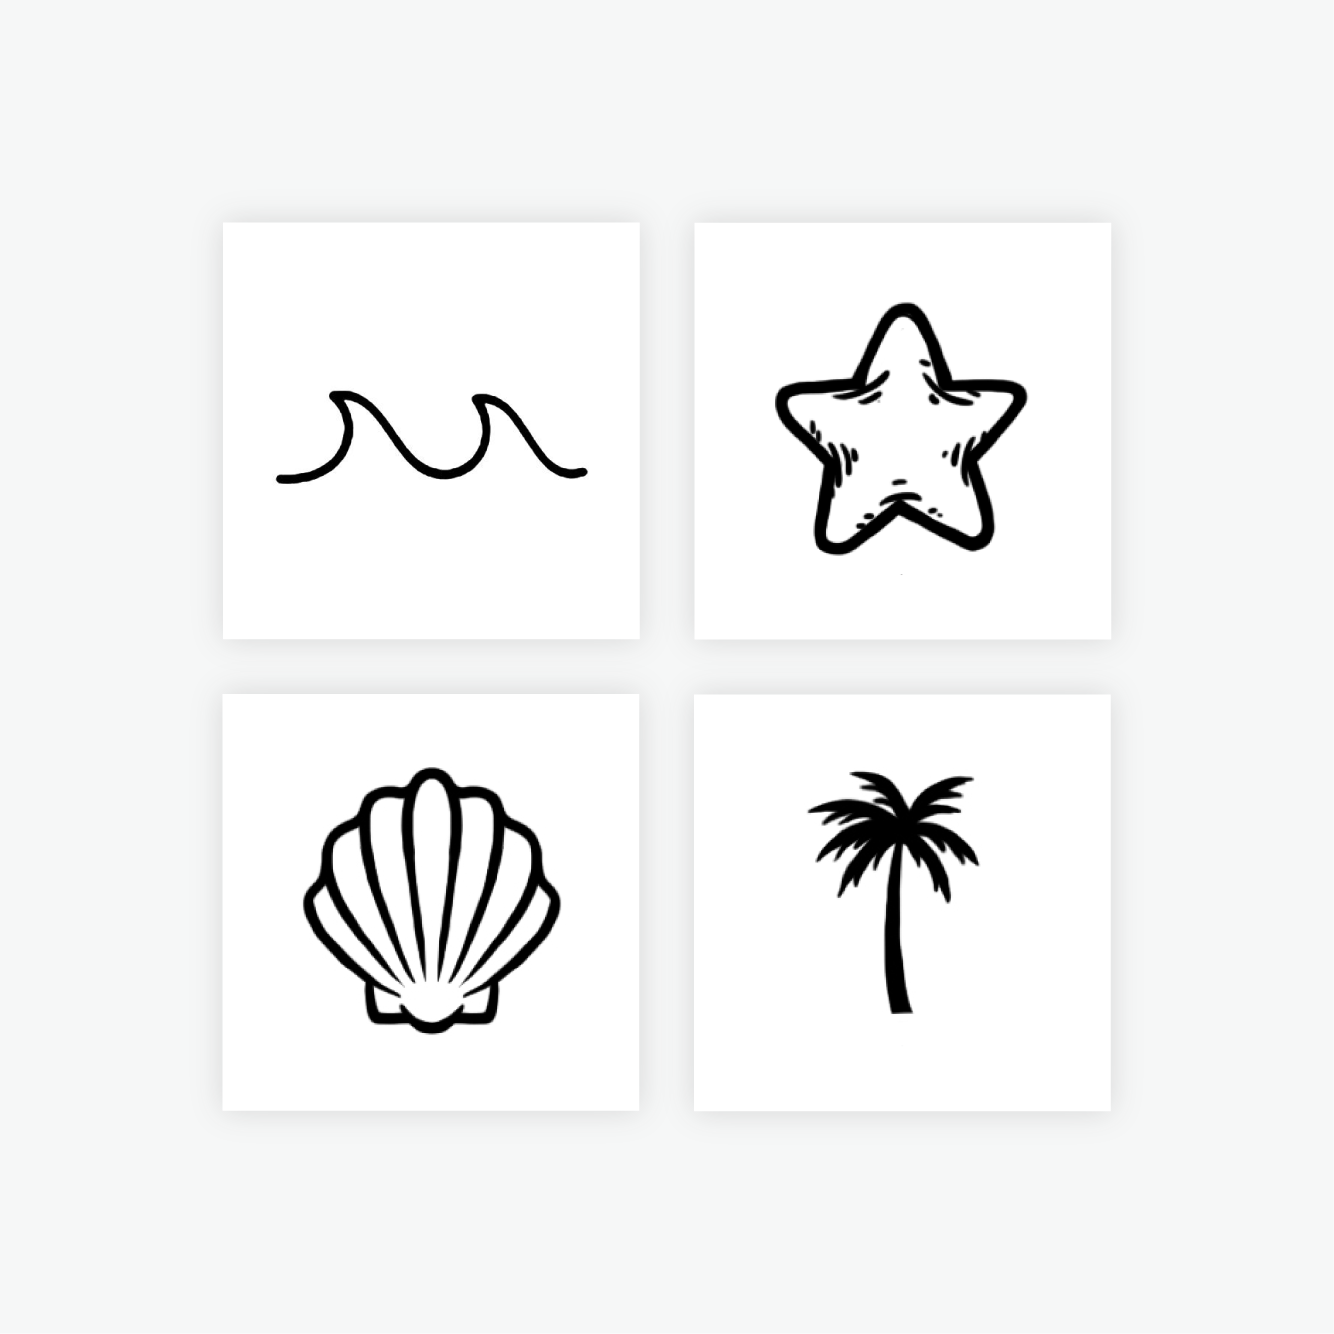 Beachy Keen by inkbox is a  temporary tattoo from inkbox - 2